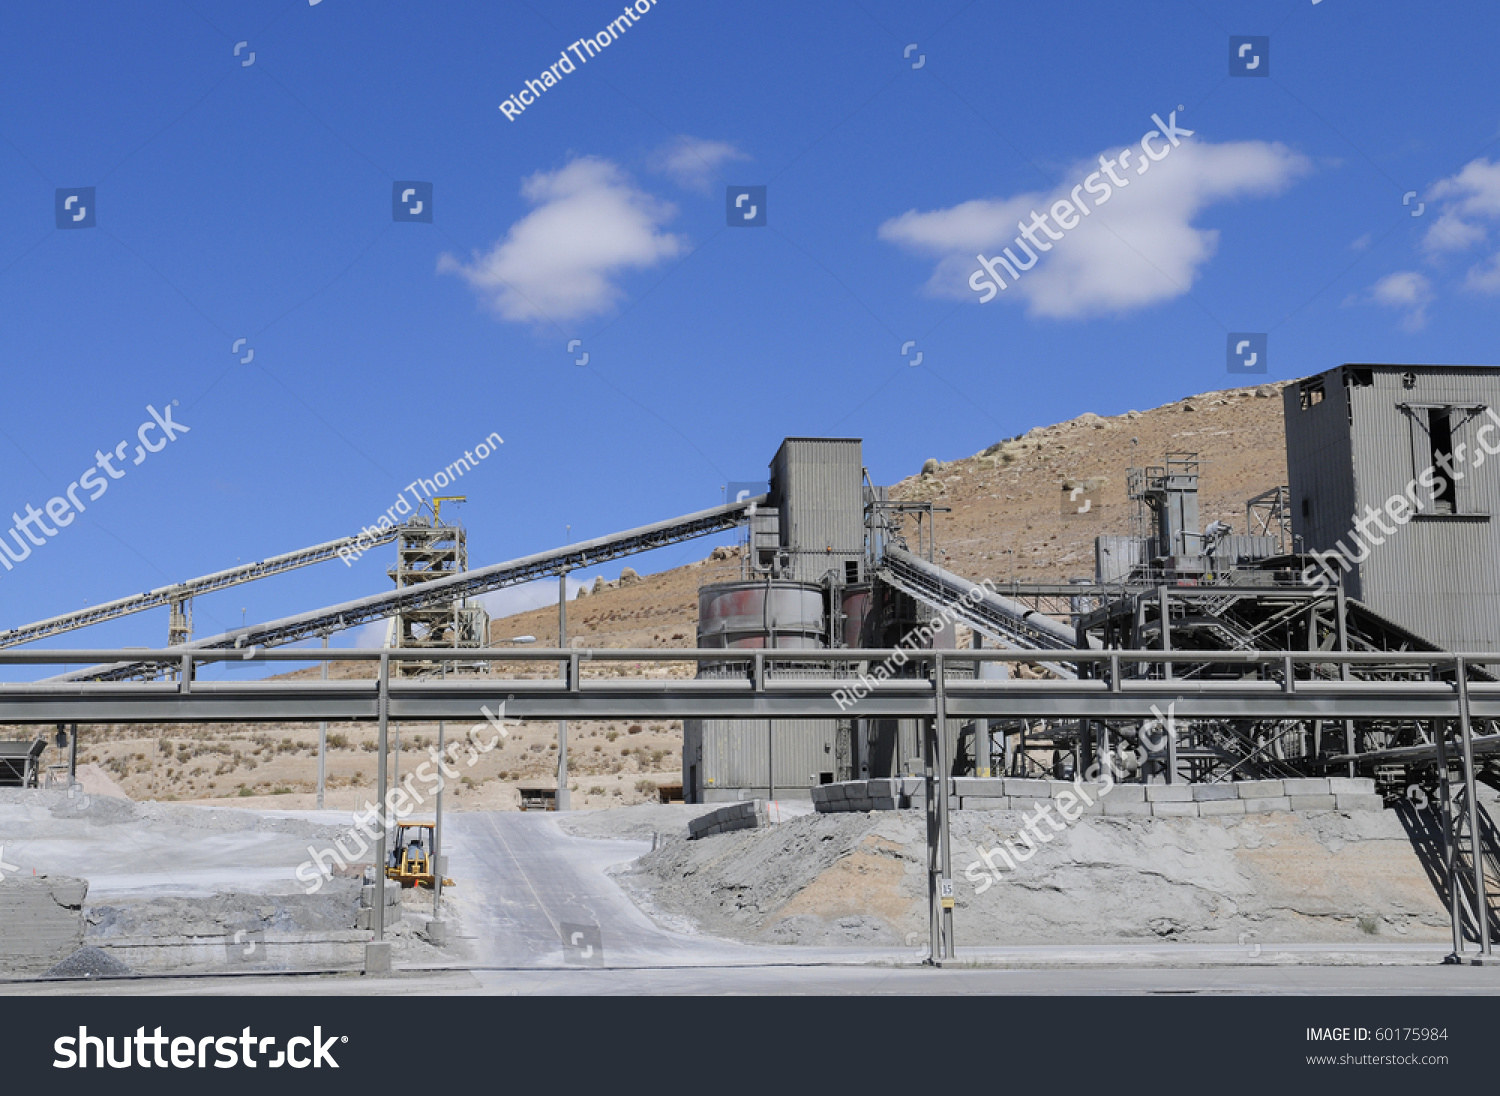 Cement Manufacturing Plants : Partial view of large california cement manufacturing